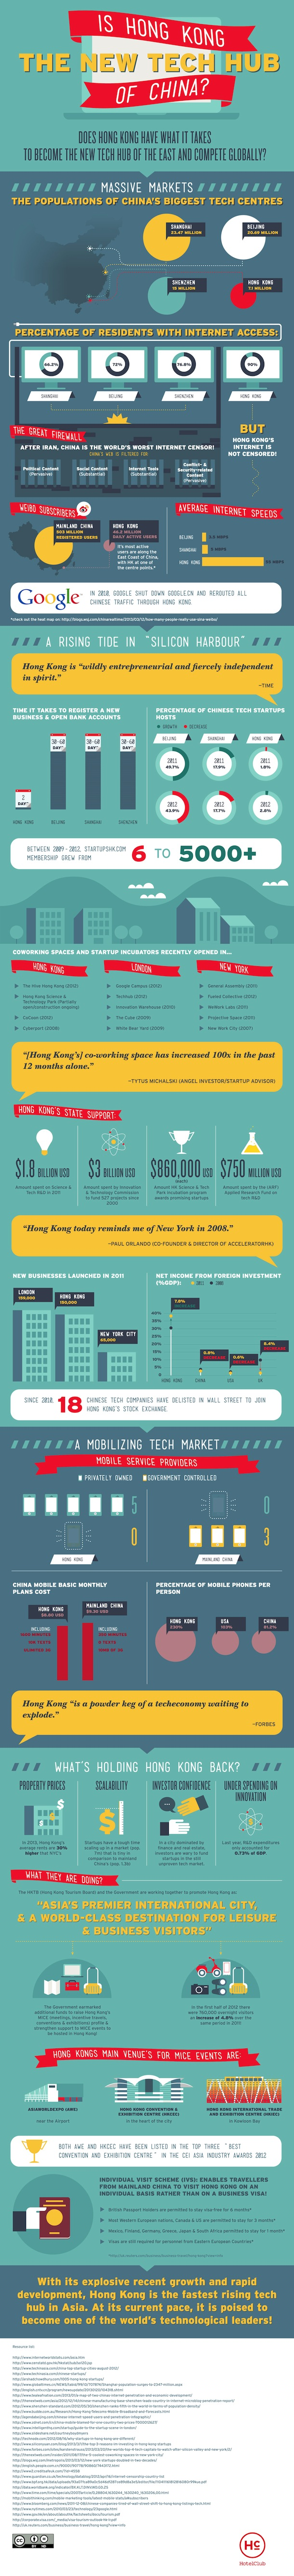 Is Hong Kong the Next Biggest Tech Centre of China